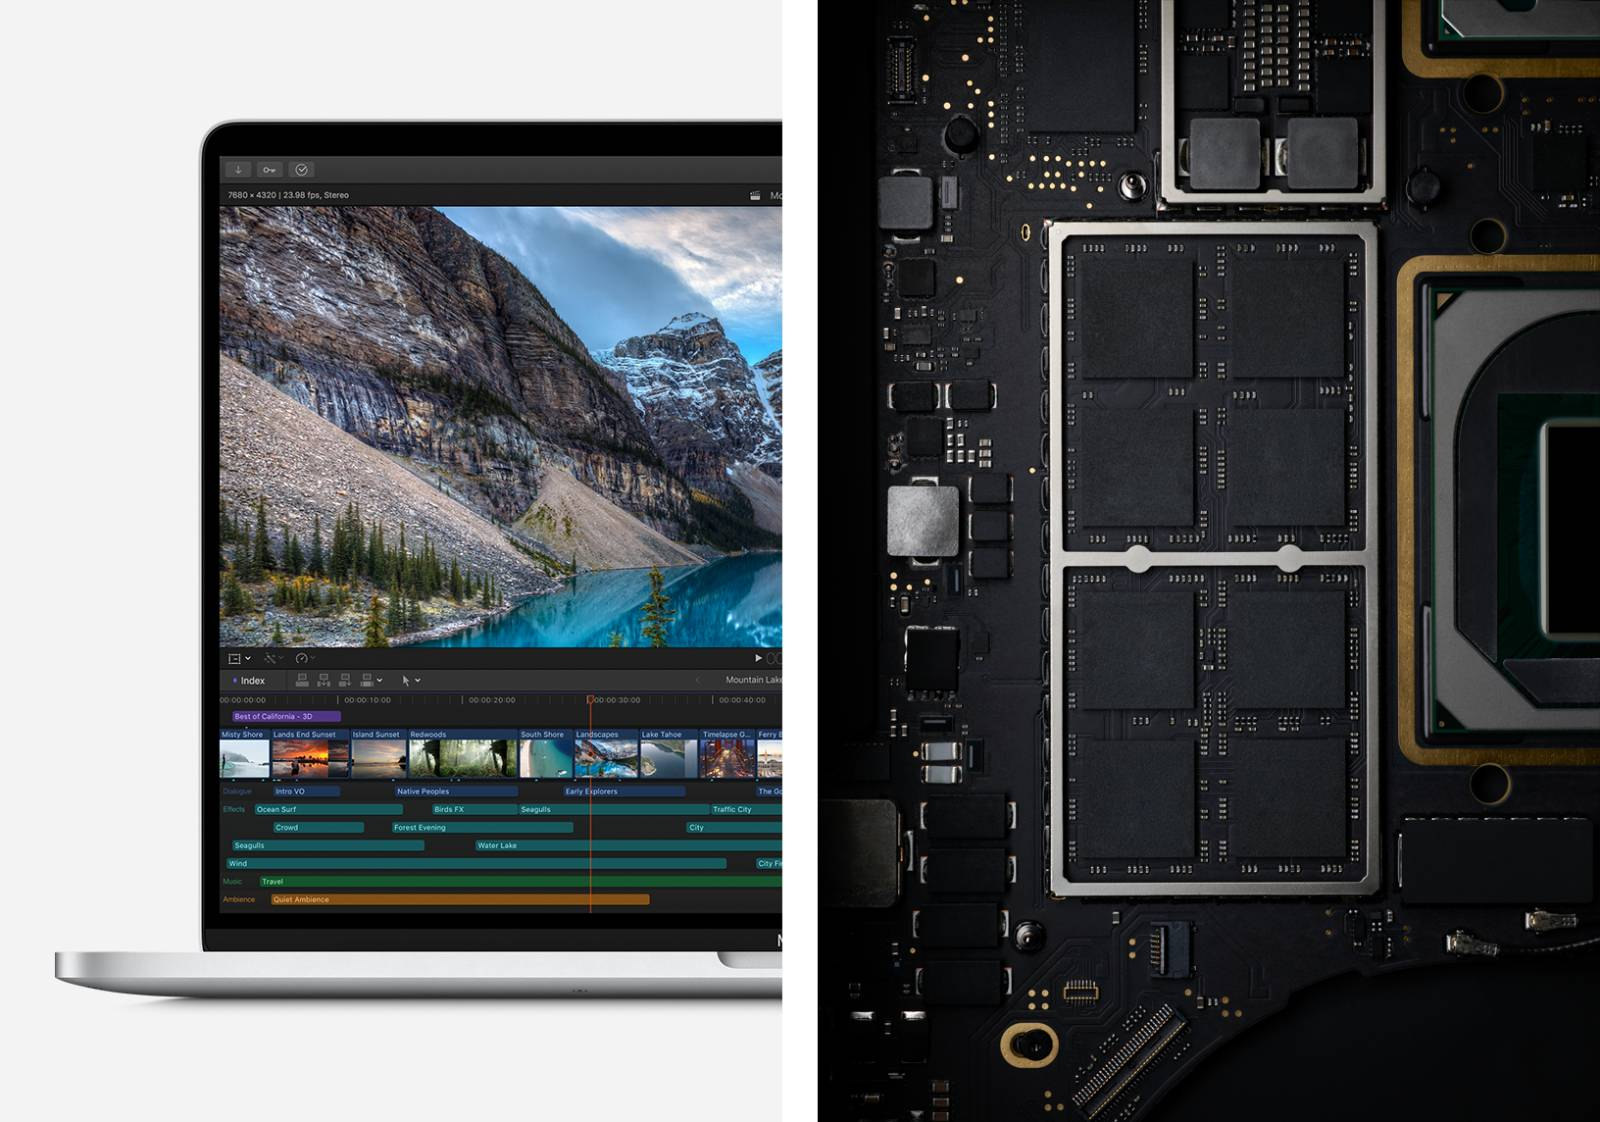 apple macbook pro half and half screen and interior layout